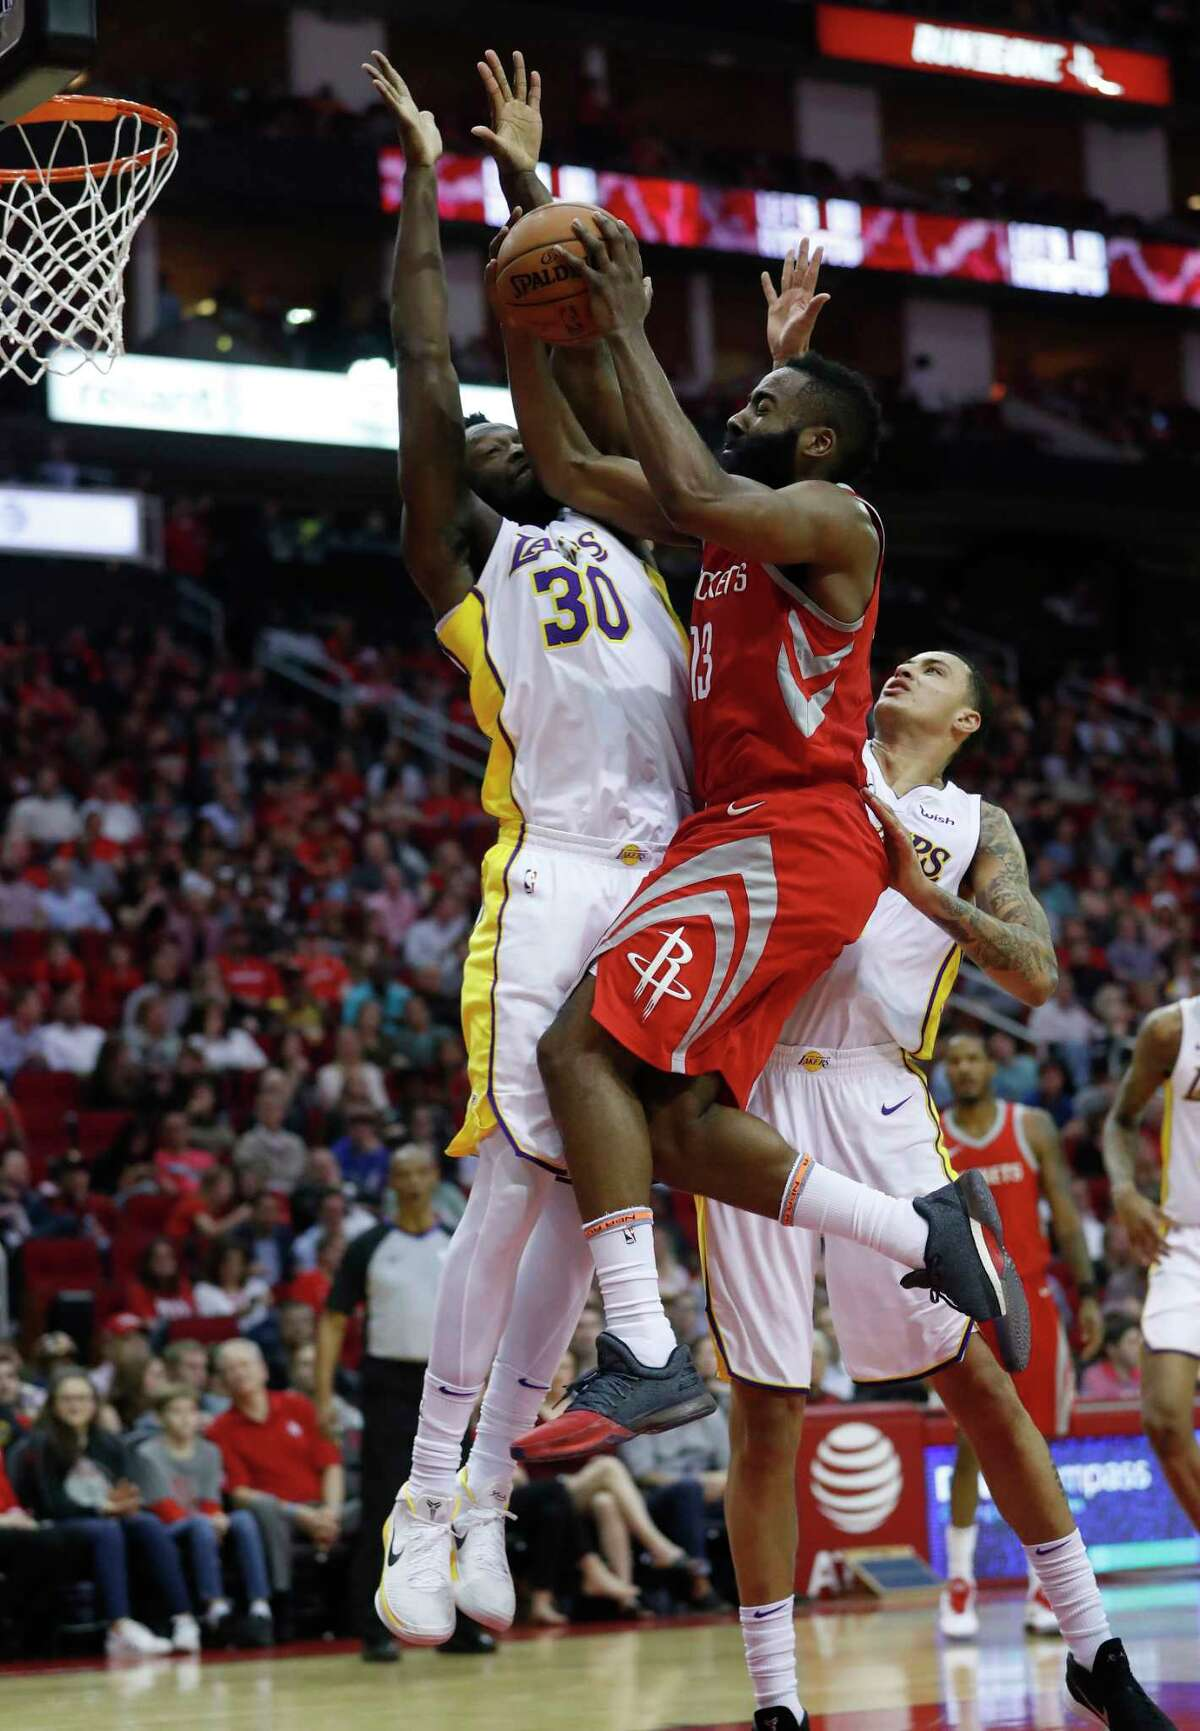 Houston Rockets guard James Harden (13) goes up for the shot against Los Angeles Lakers forward Julius Randle (30) during the first half of an NBA basketball game at Toyota Center, Wednesday, Dec. 20, 2017, in Houston.